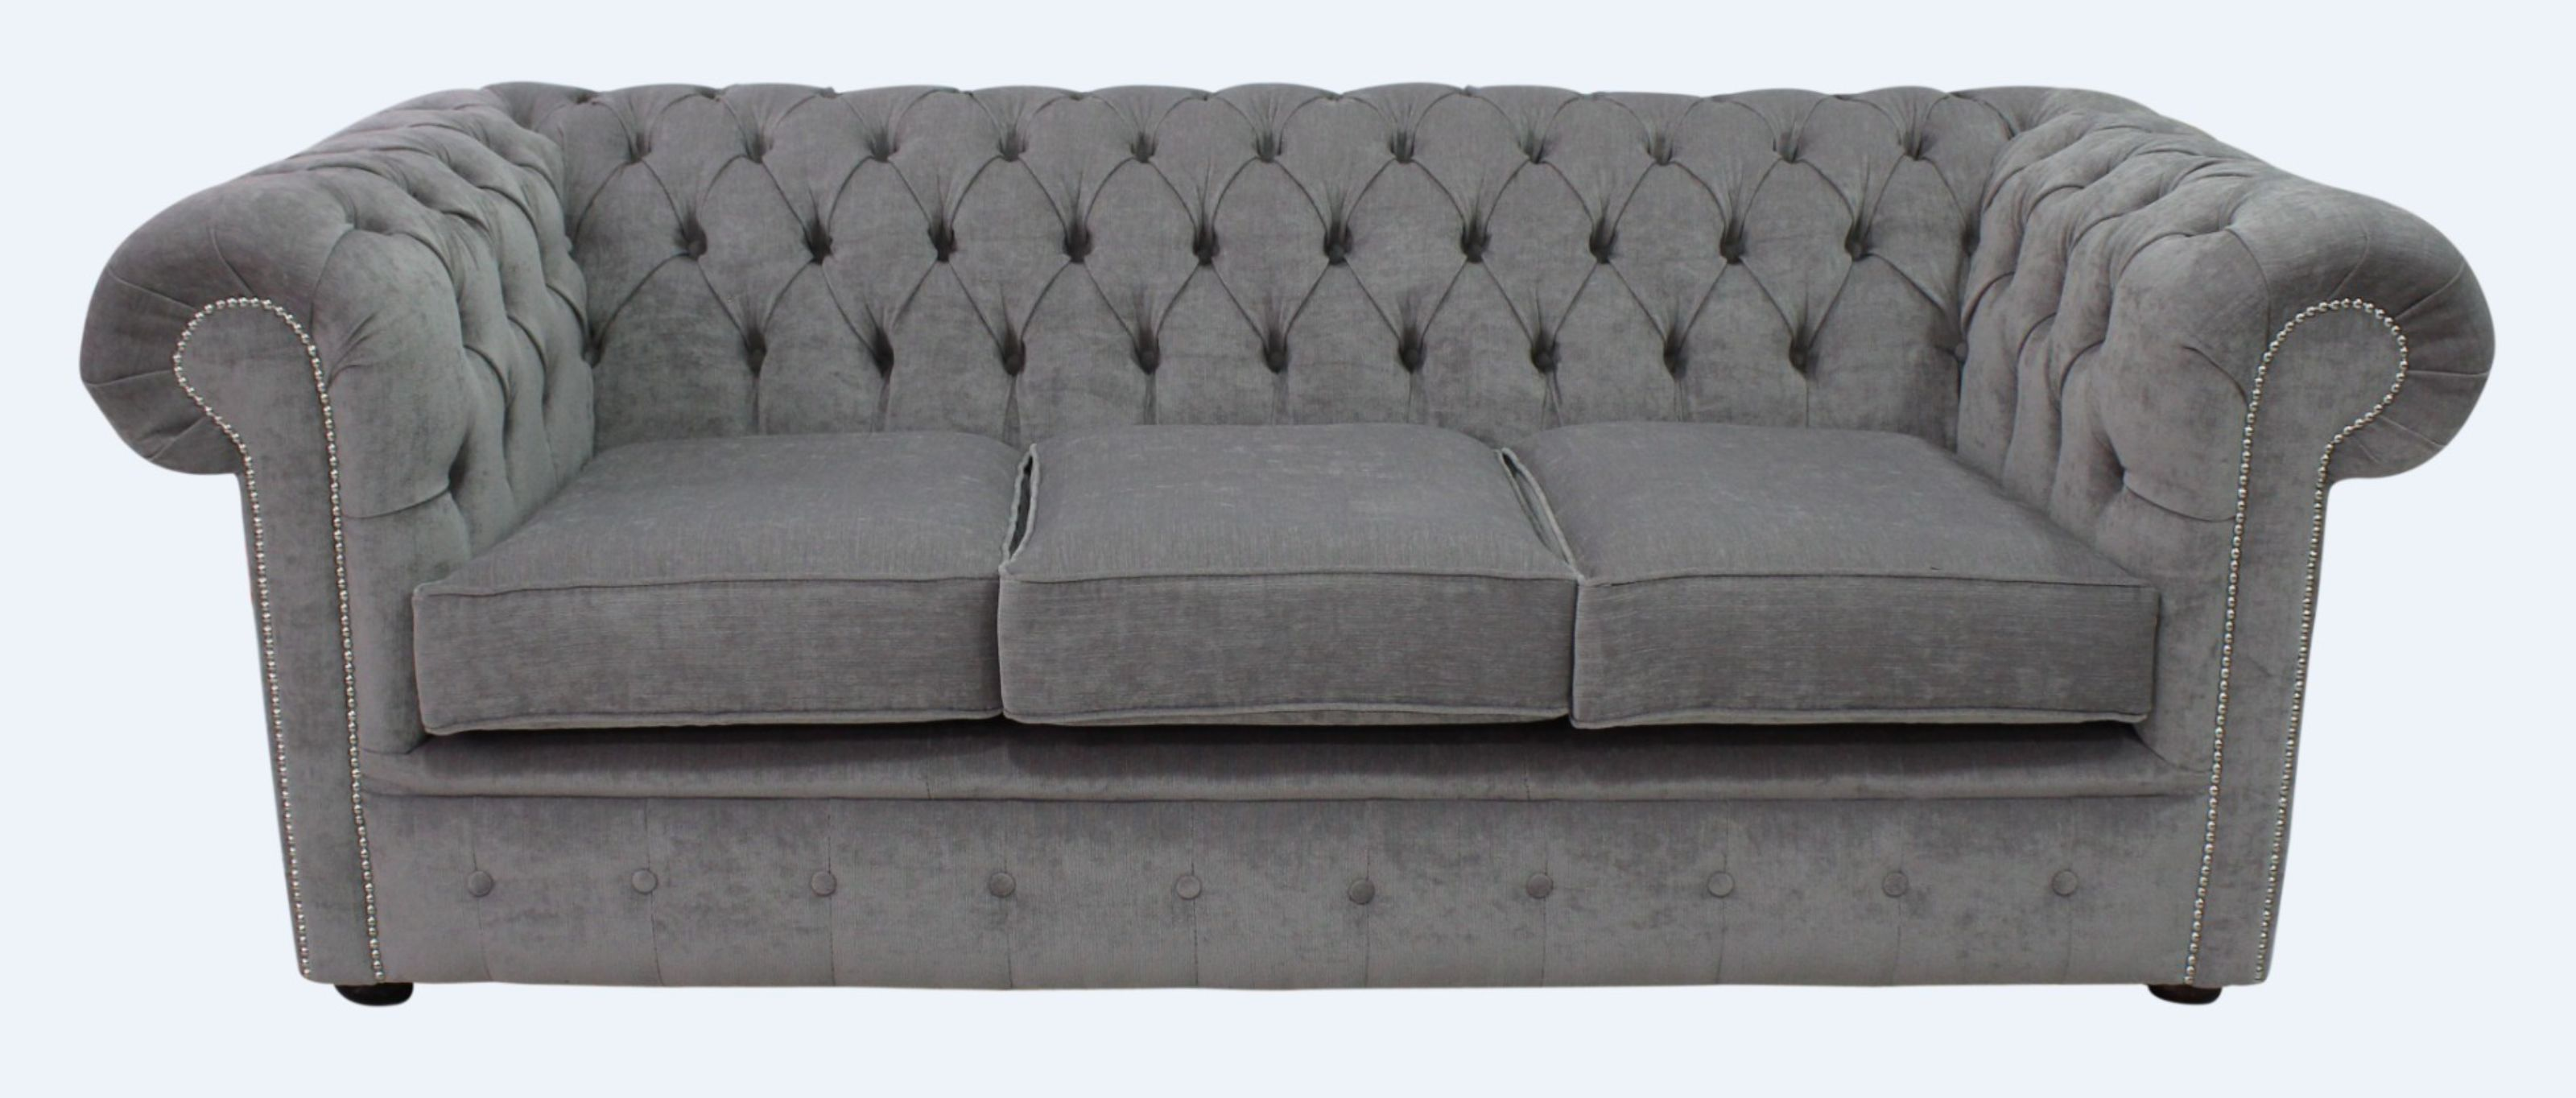 Grey Fabric Chesterfield Sofa Designersofas4u